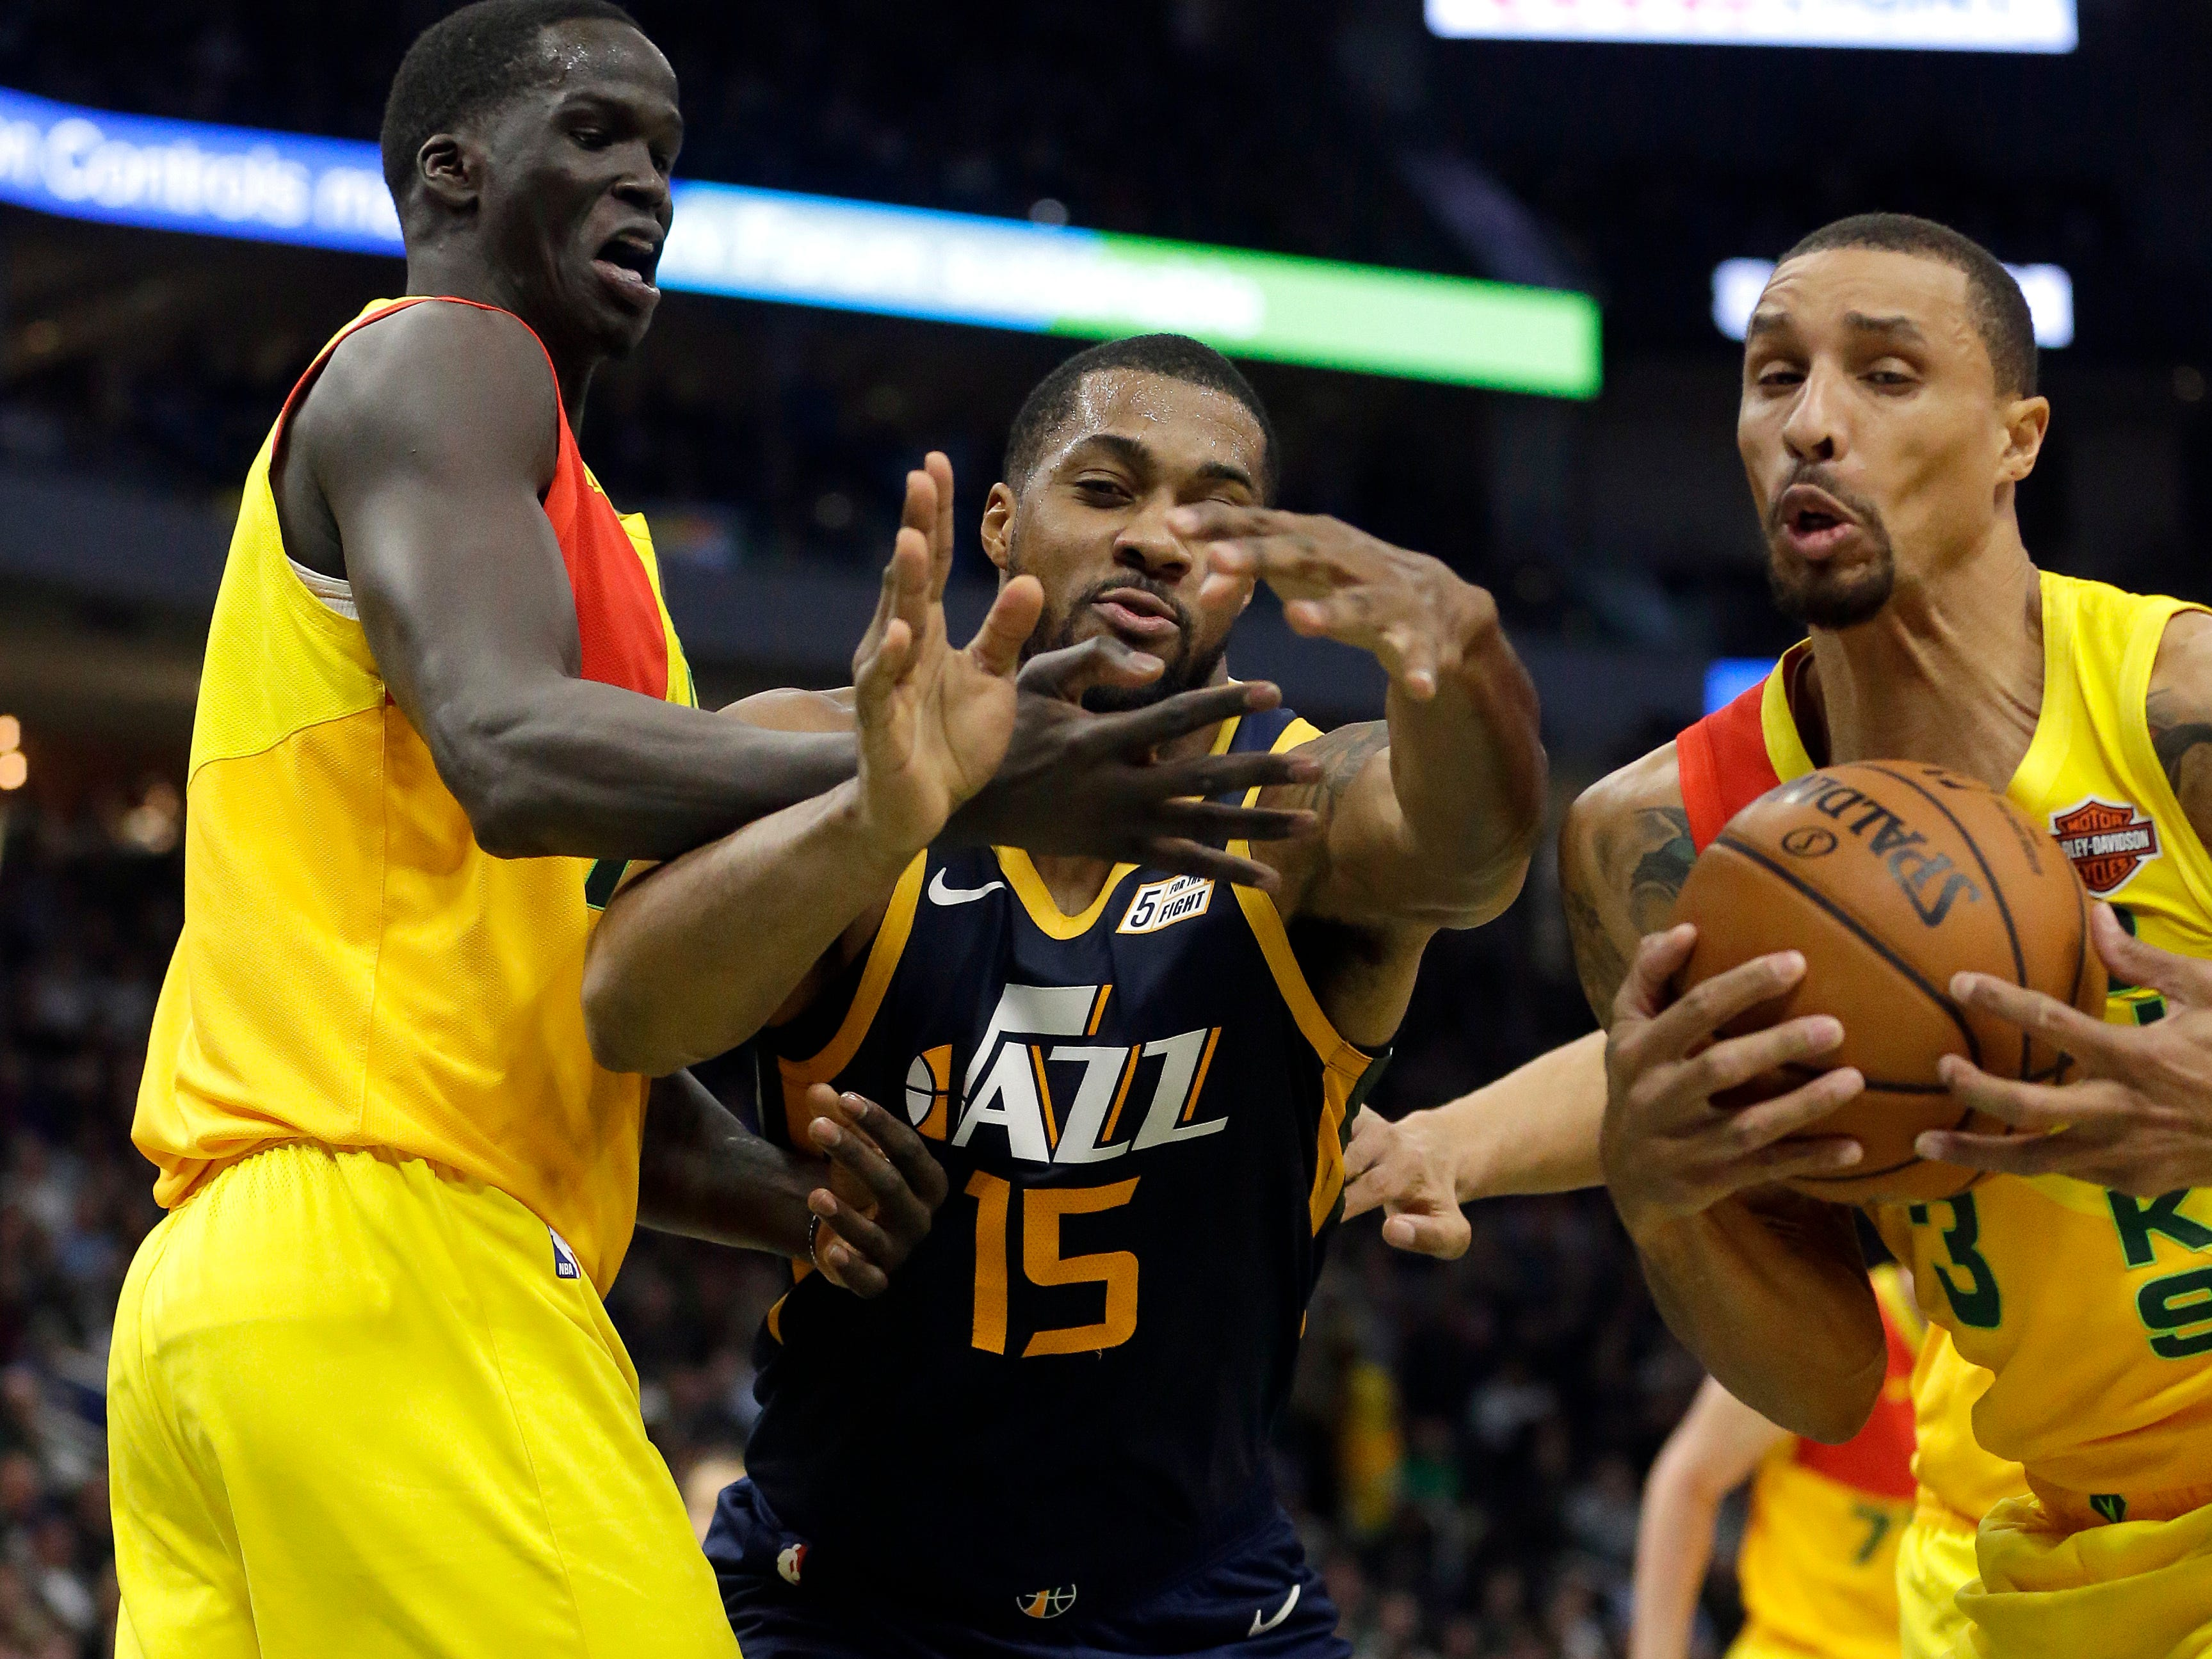 George Hill (right) of the Bucks steals the ball from the Jazz's Derrick Favors on Monday night.